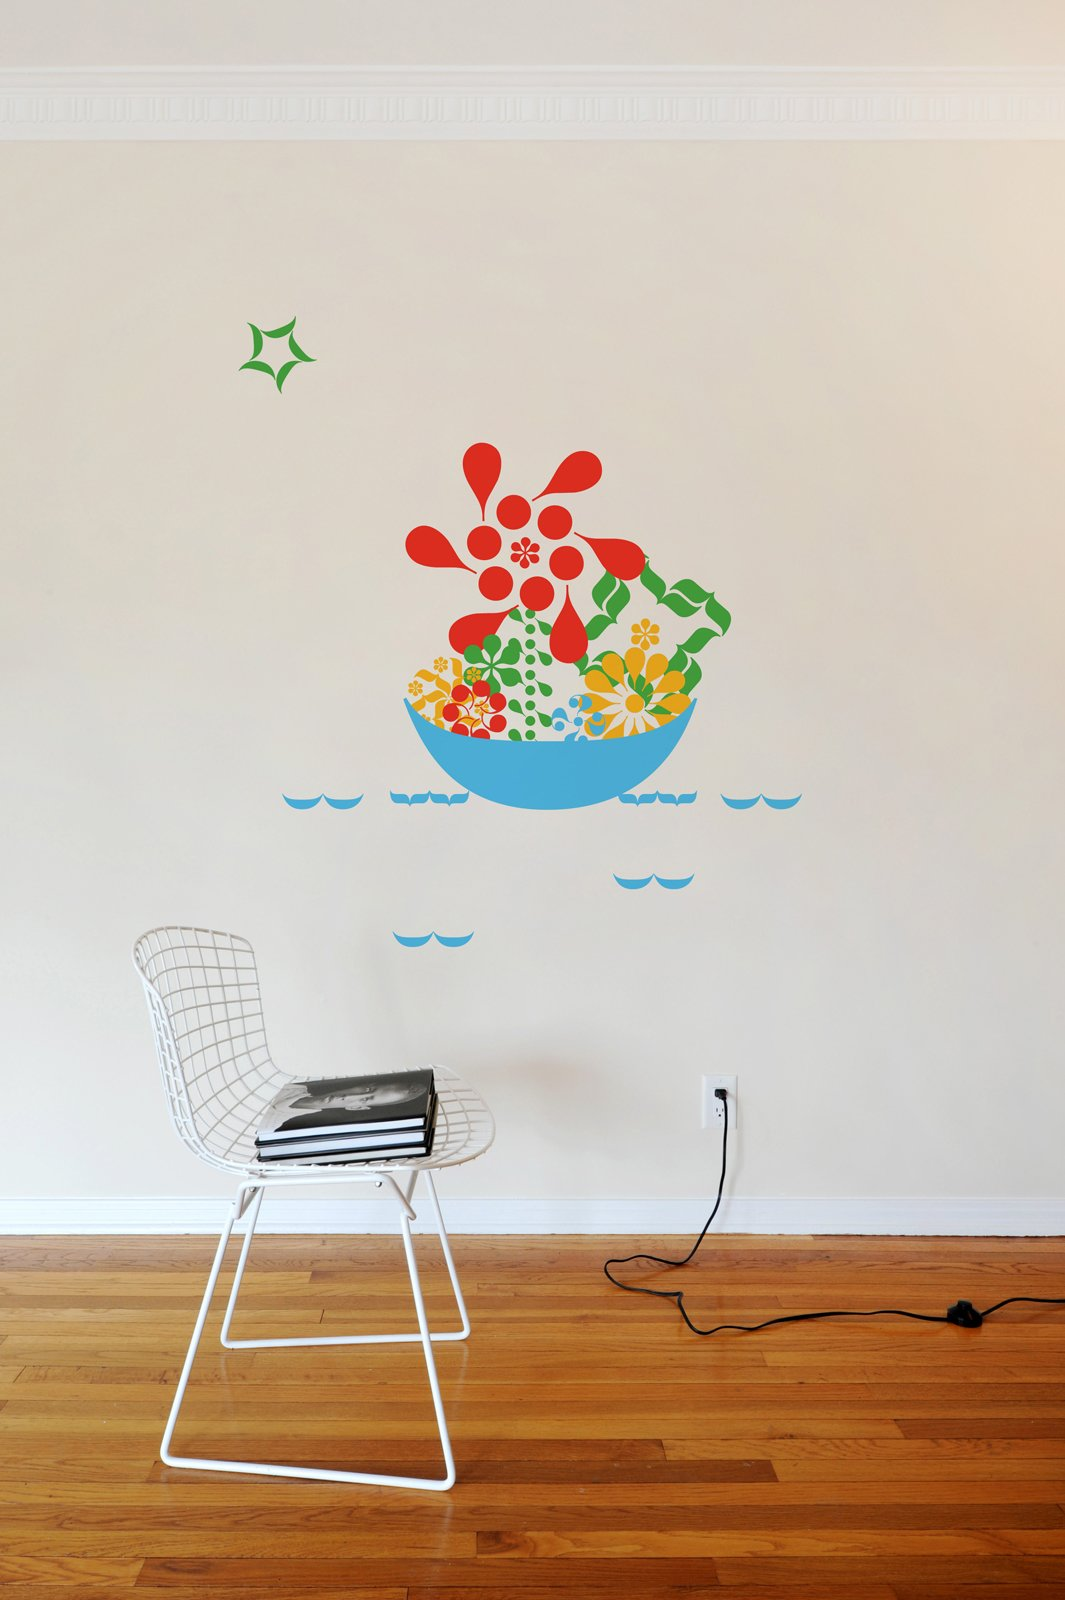 Photo 2 of 3 in Wall Decals from Blik